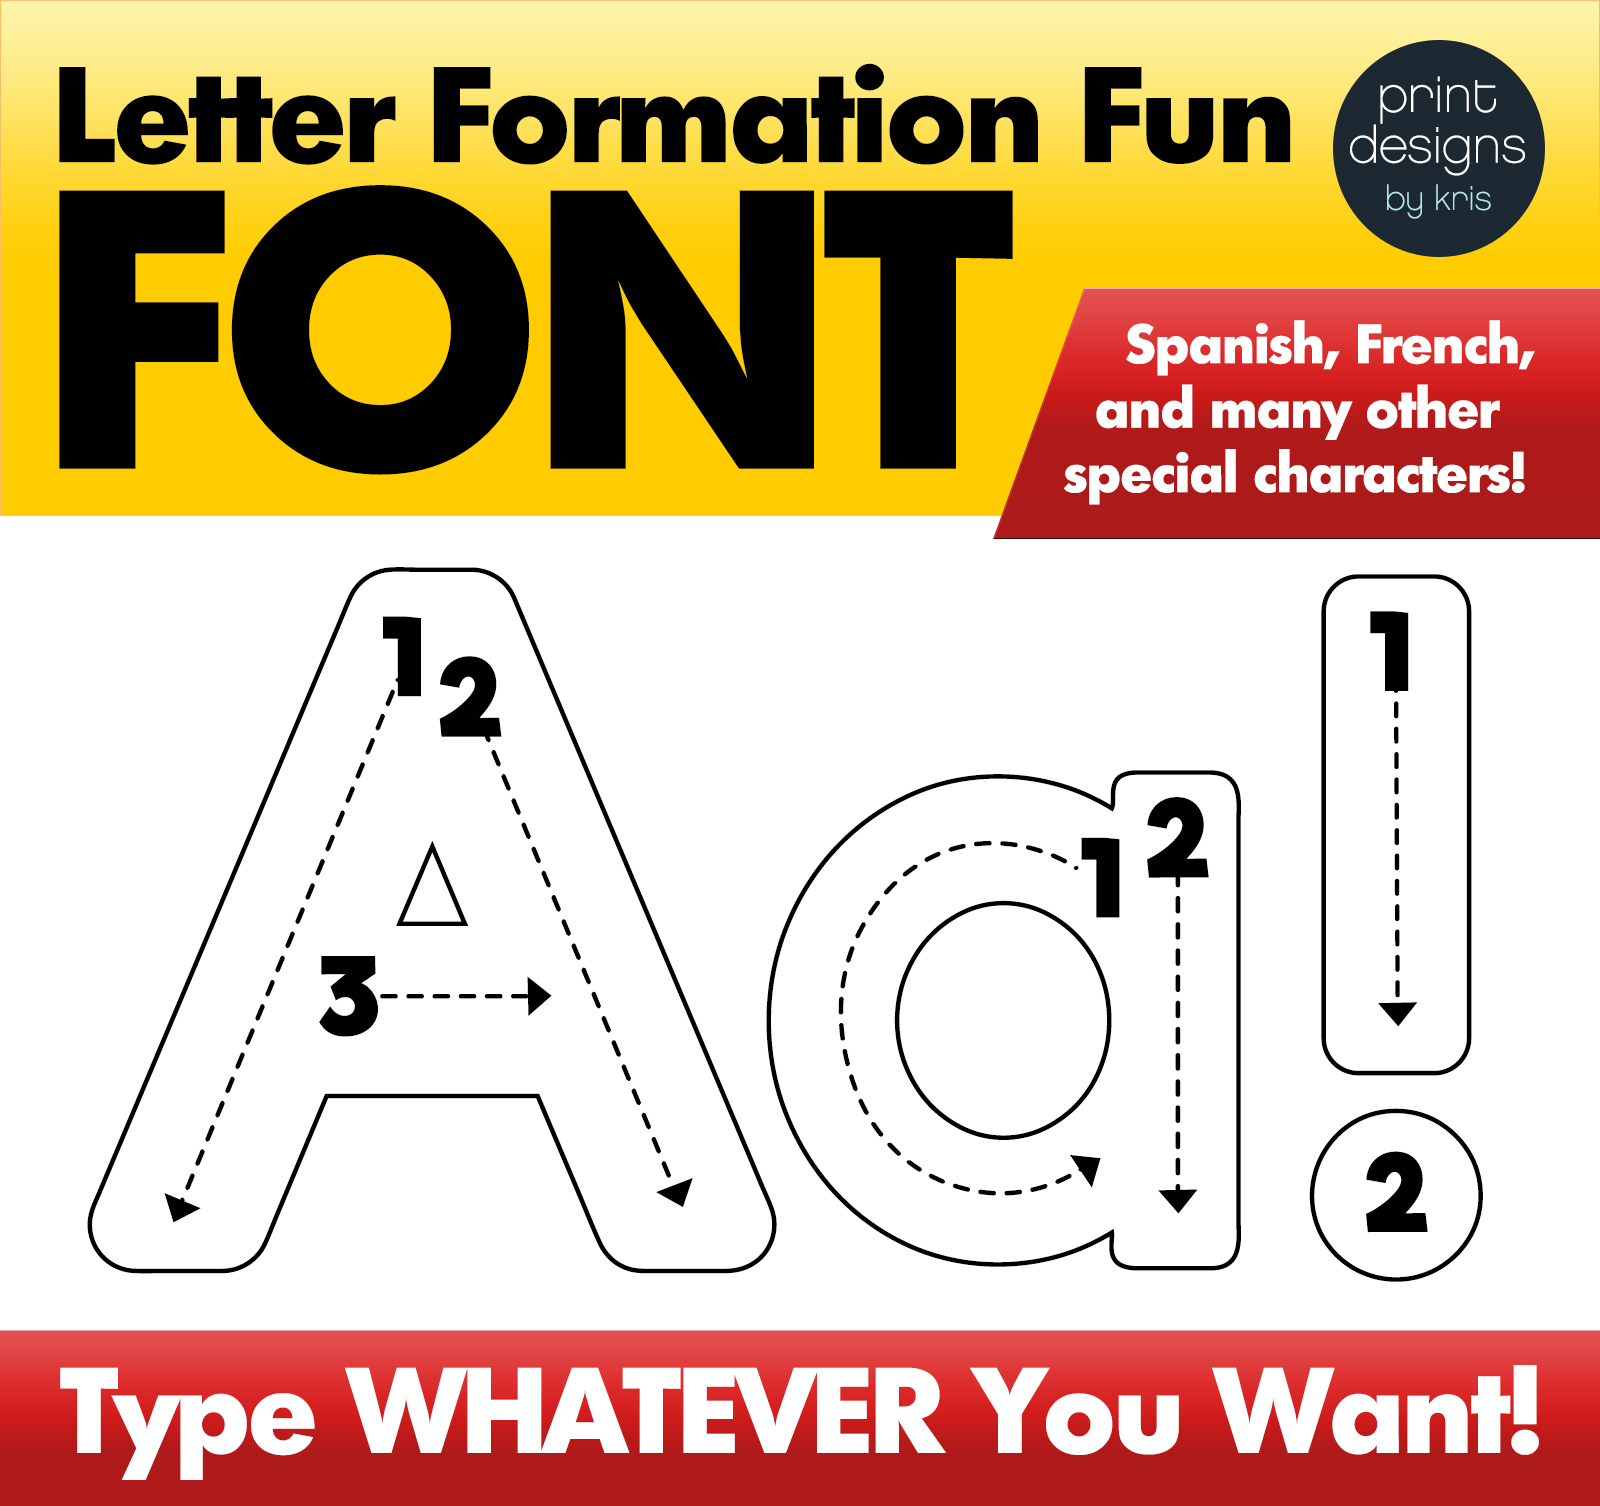 four-lined-letter-font-print-designs-by-